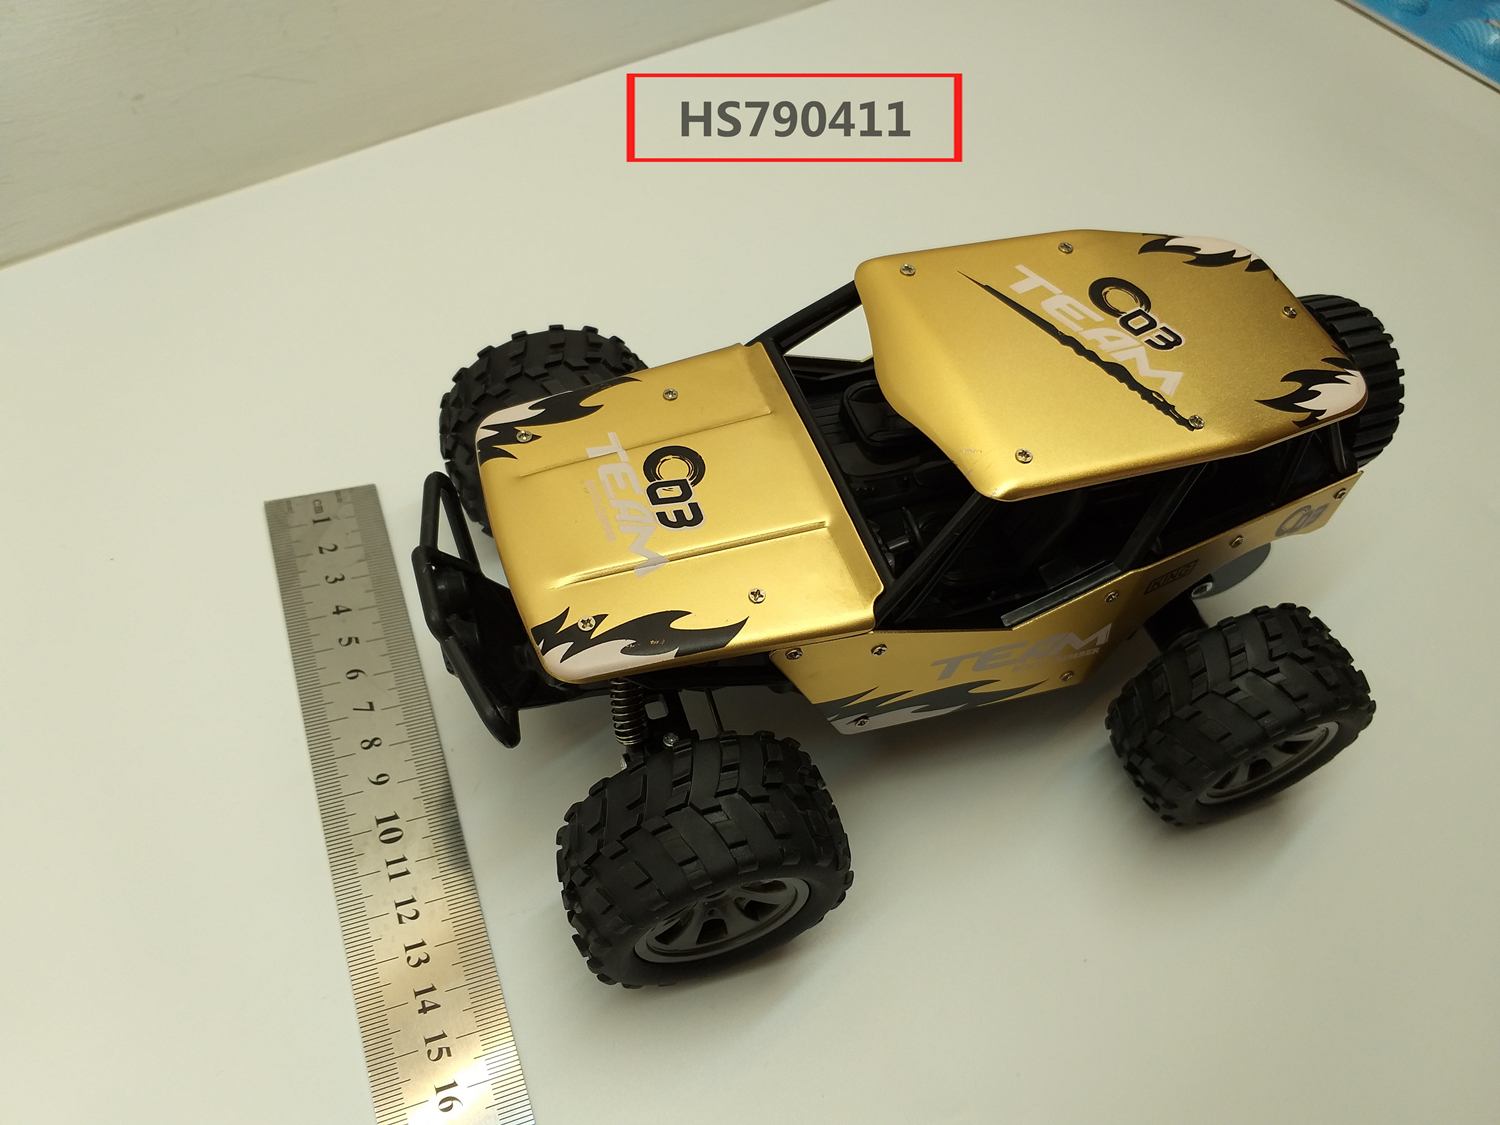 HS790411, Huwsin Toys, 118 2.4G Alloy rc car,red/blue/gold 3color mixed, Remote Control High Speed Vehicle RC Toys